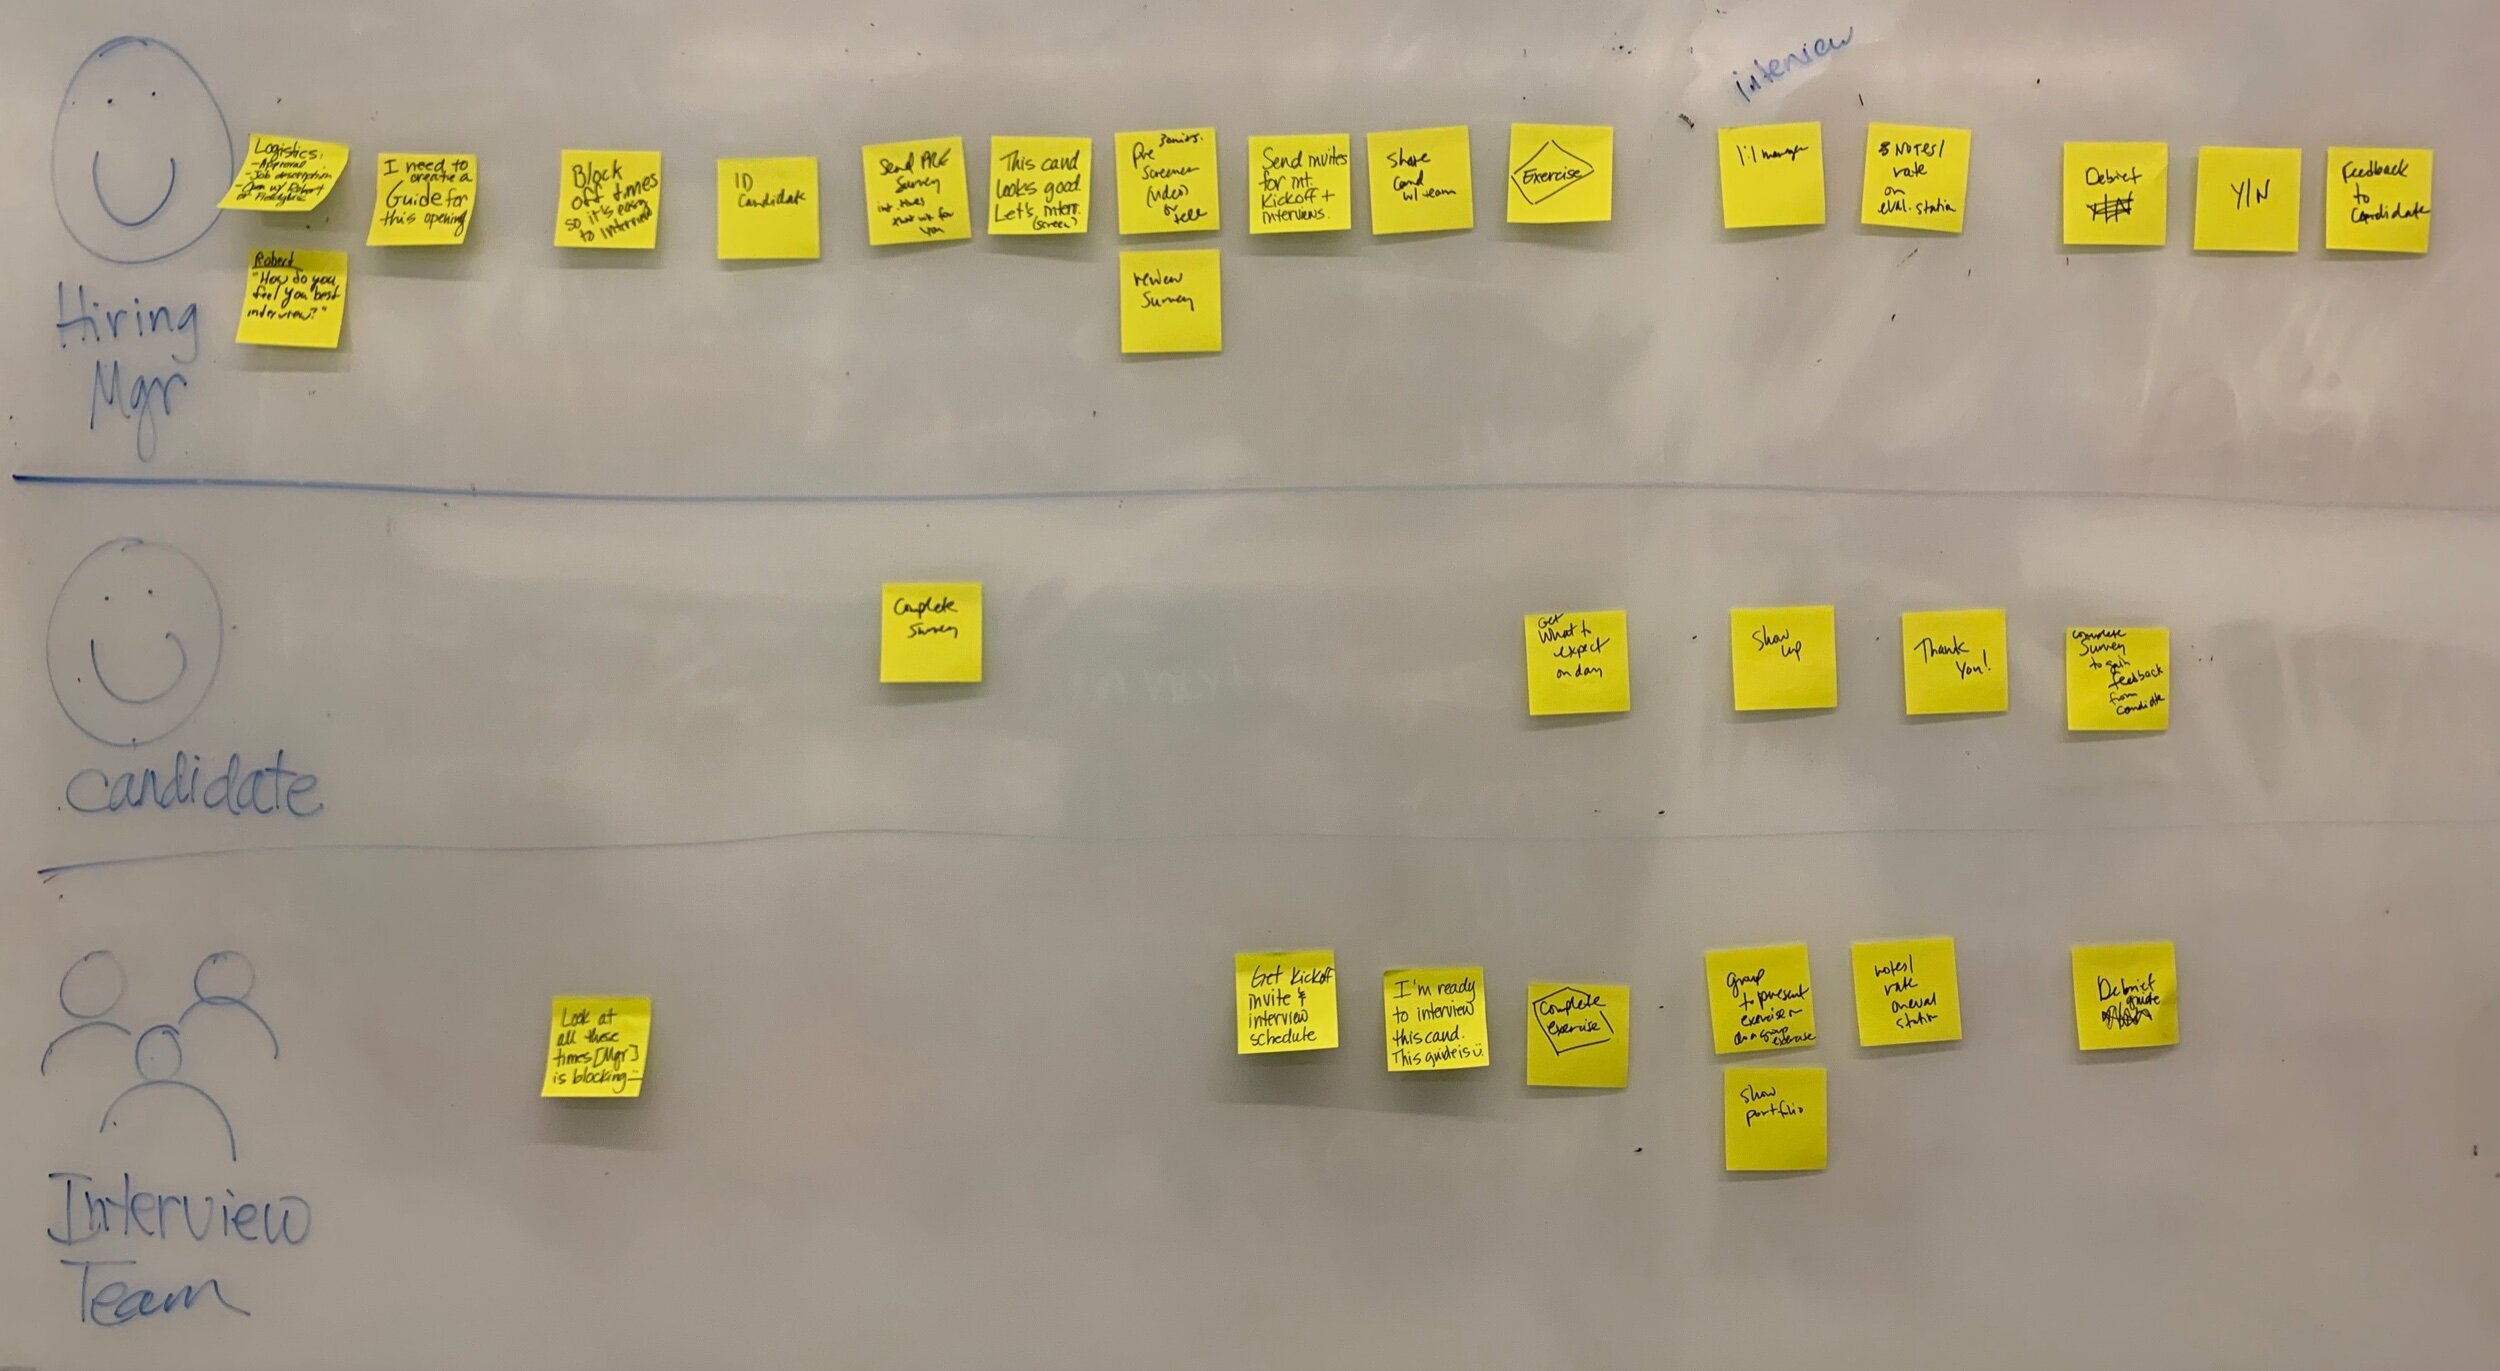 Design managers collaborated on journey mapping the ideal hiring experience.